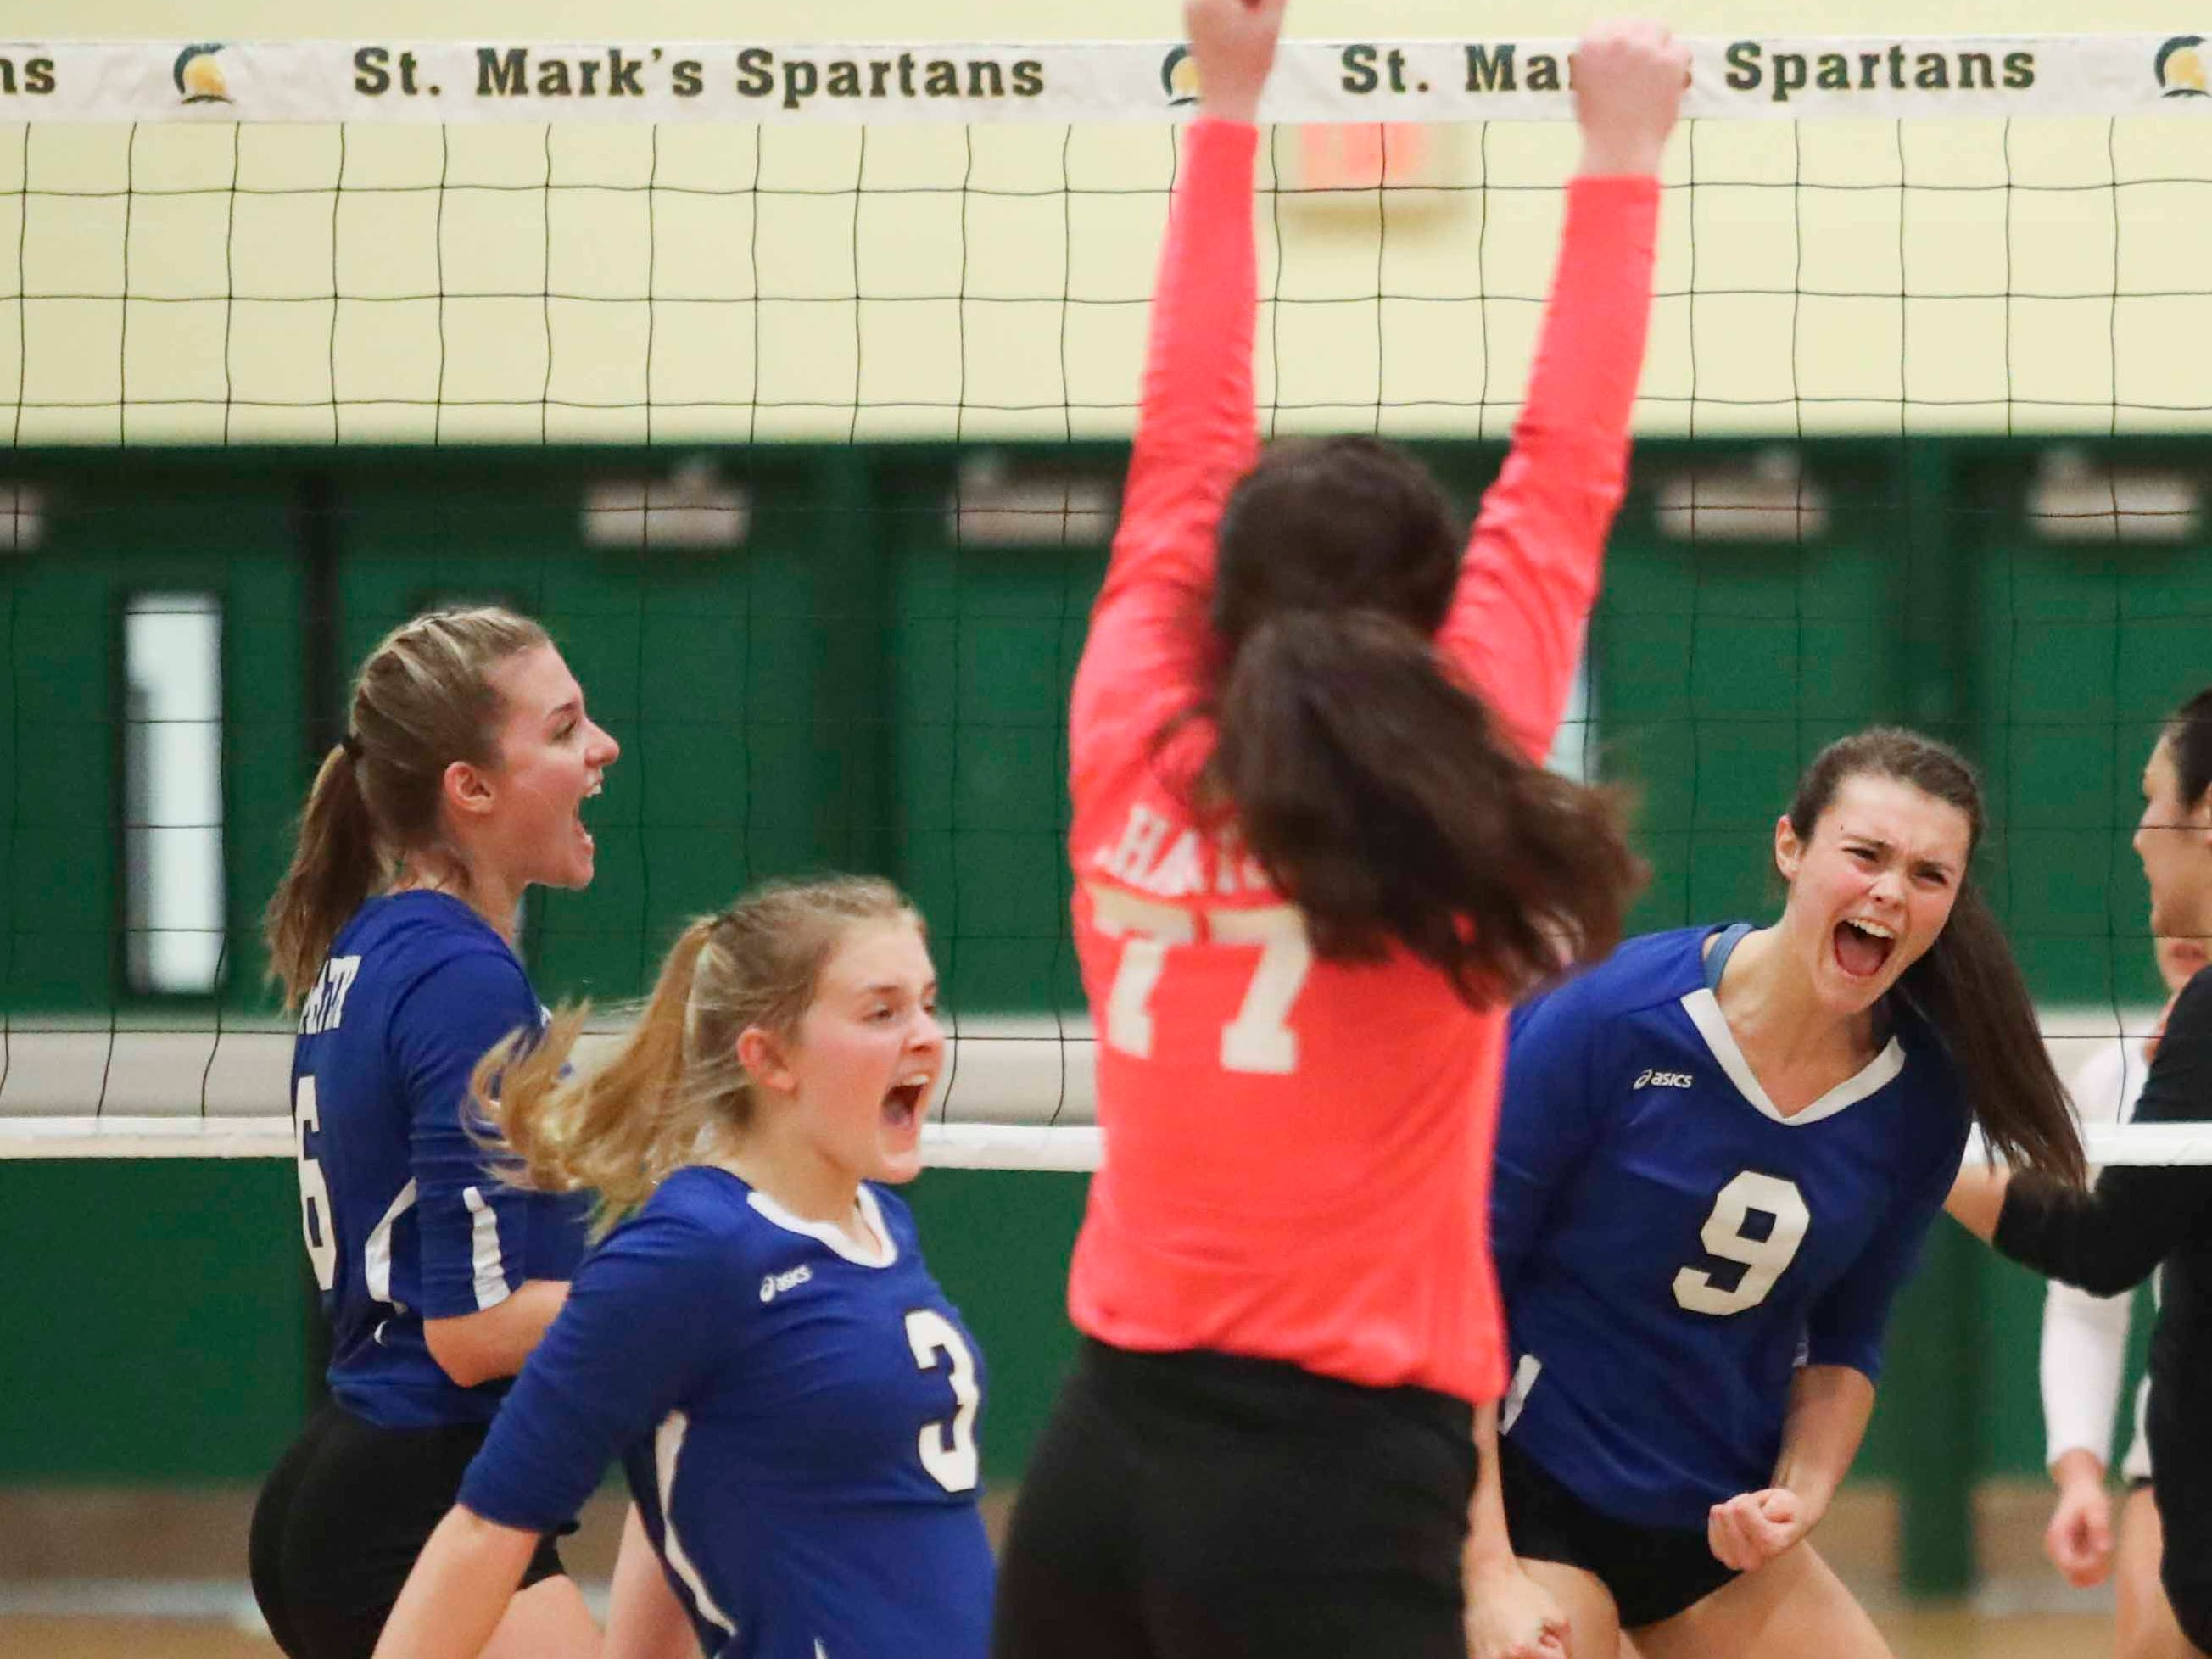 Charter School of Wilmington's (from left) Madeline Matheny, Addy Miller, Mallory McCormick and Izzy Lugar react after a successful point as the Force advances to Monday's final in the DIAA state tournament Thursday at St. Mark's High School.